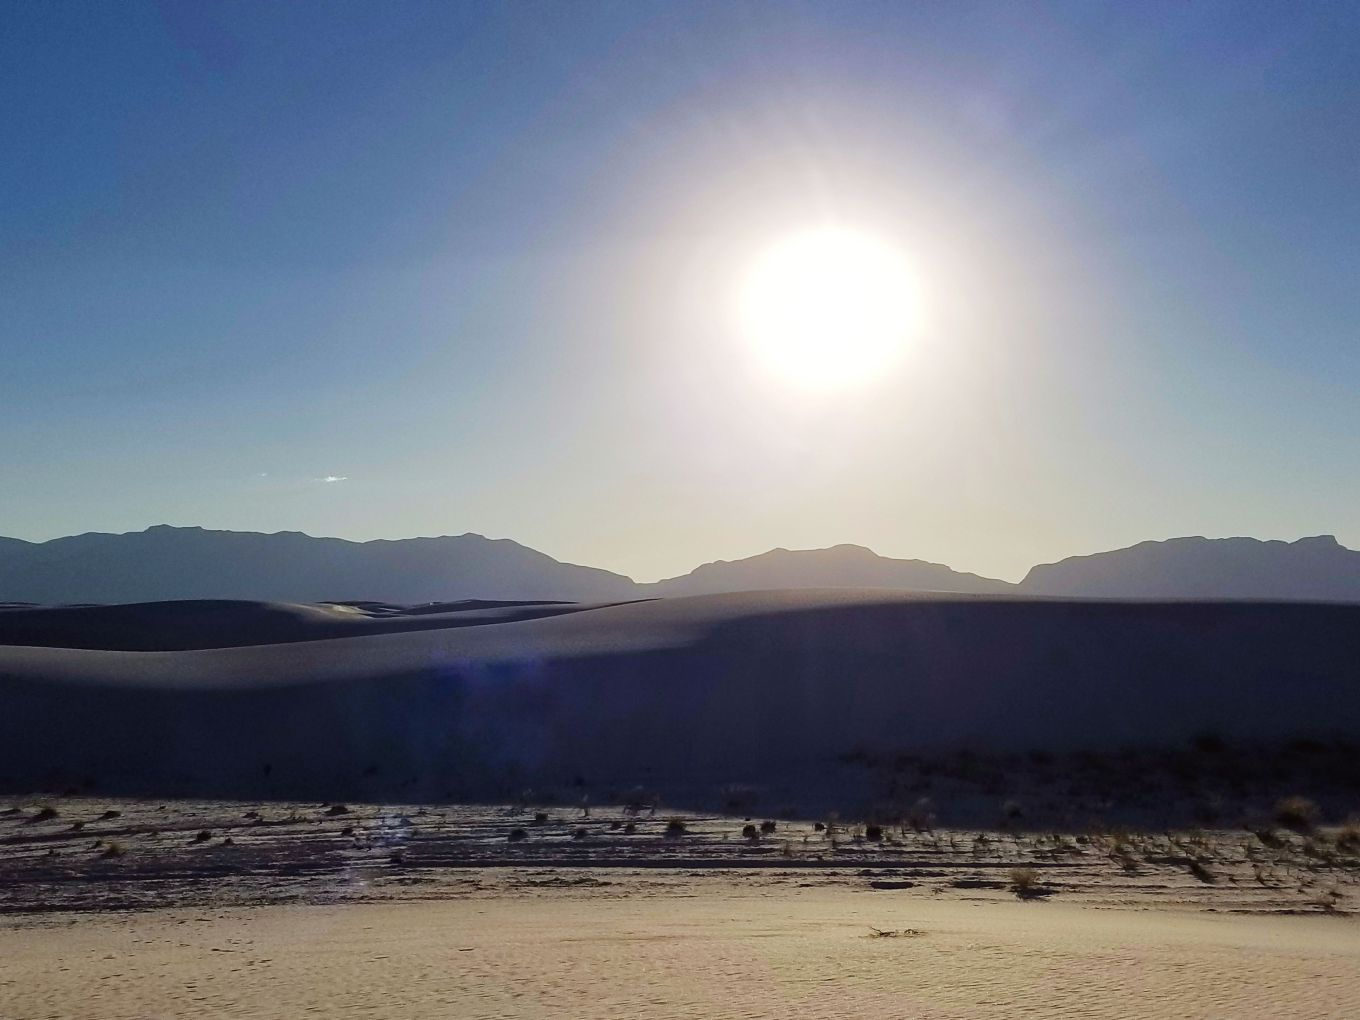 Midday sun silhouetting San Andres Mountains at White Sands National Monument